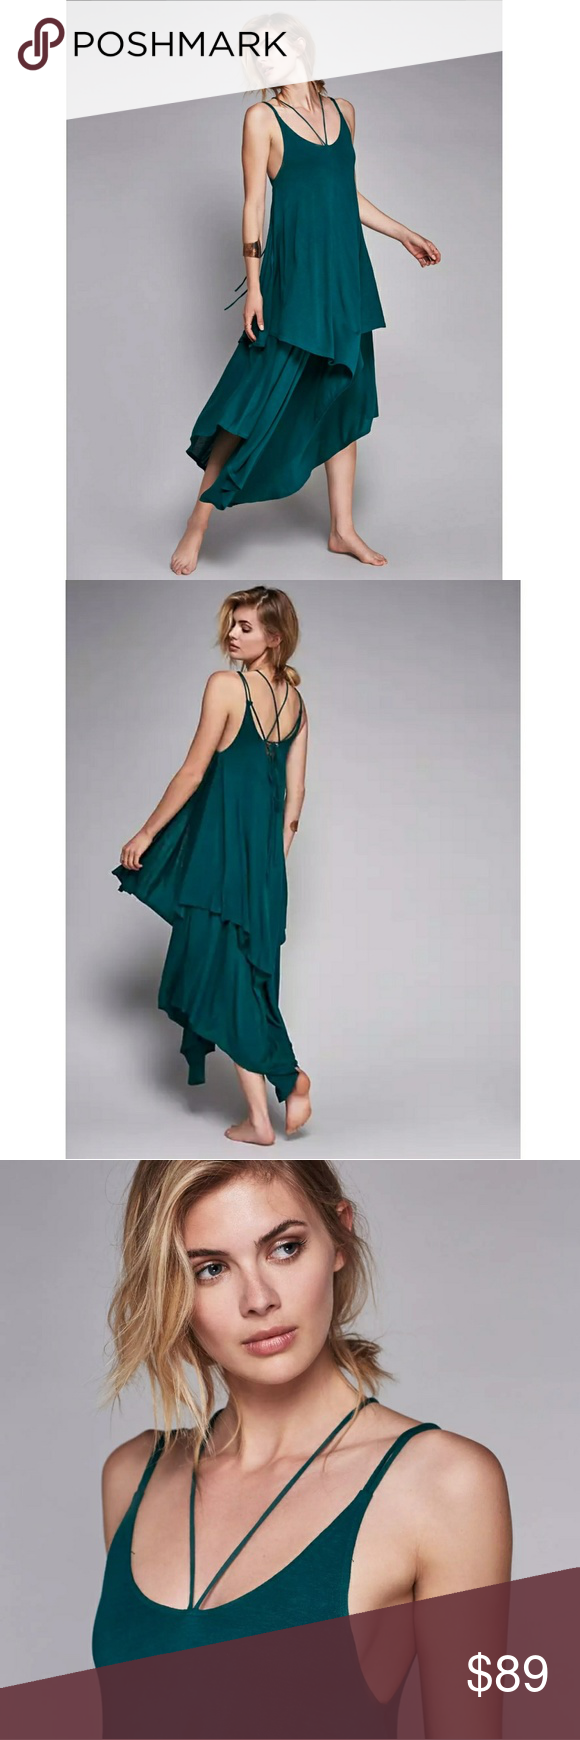 Nwt keep the tempo maxi dress nwt emerald color dark teal and